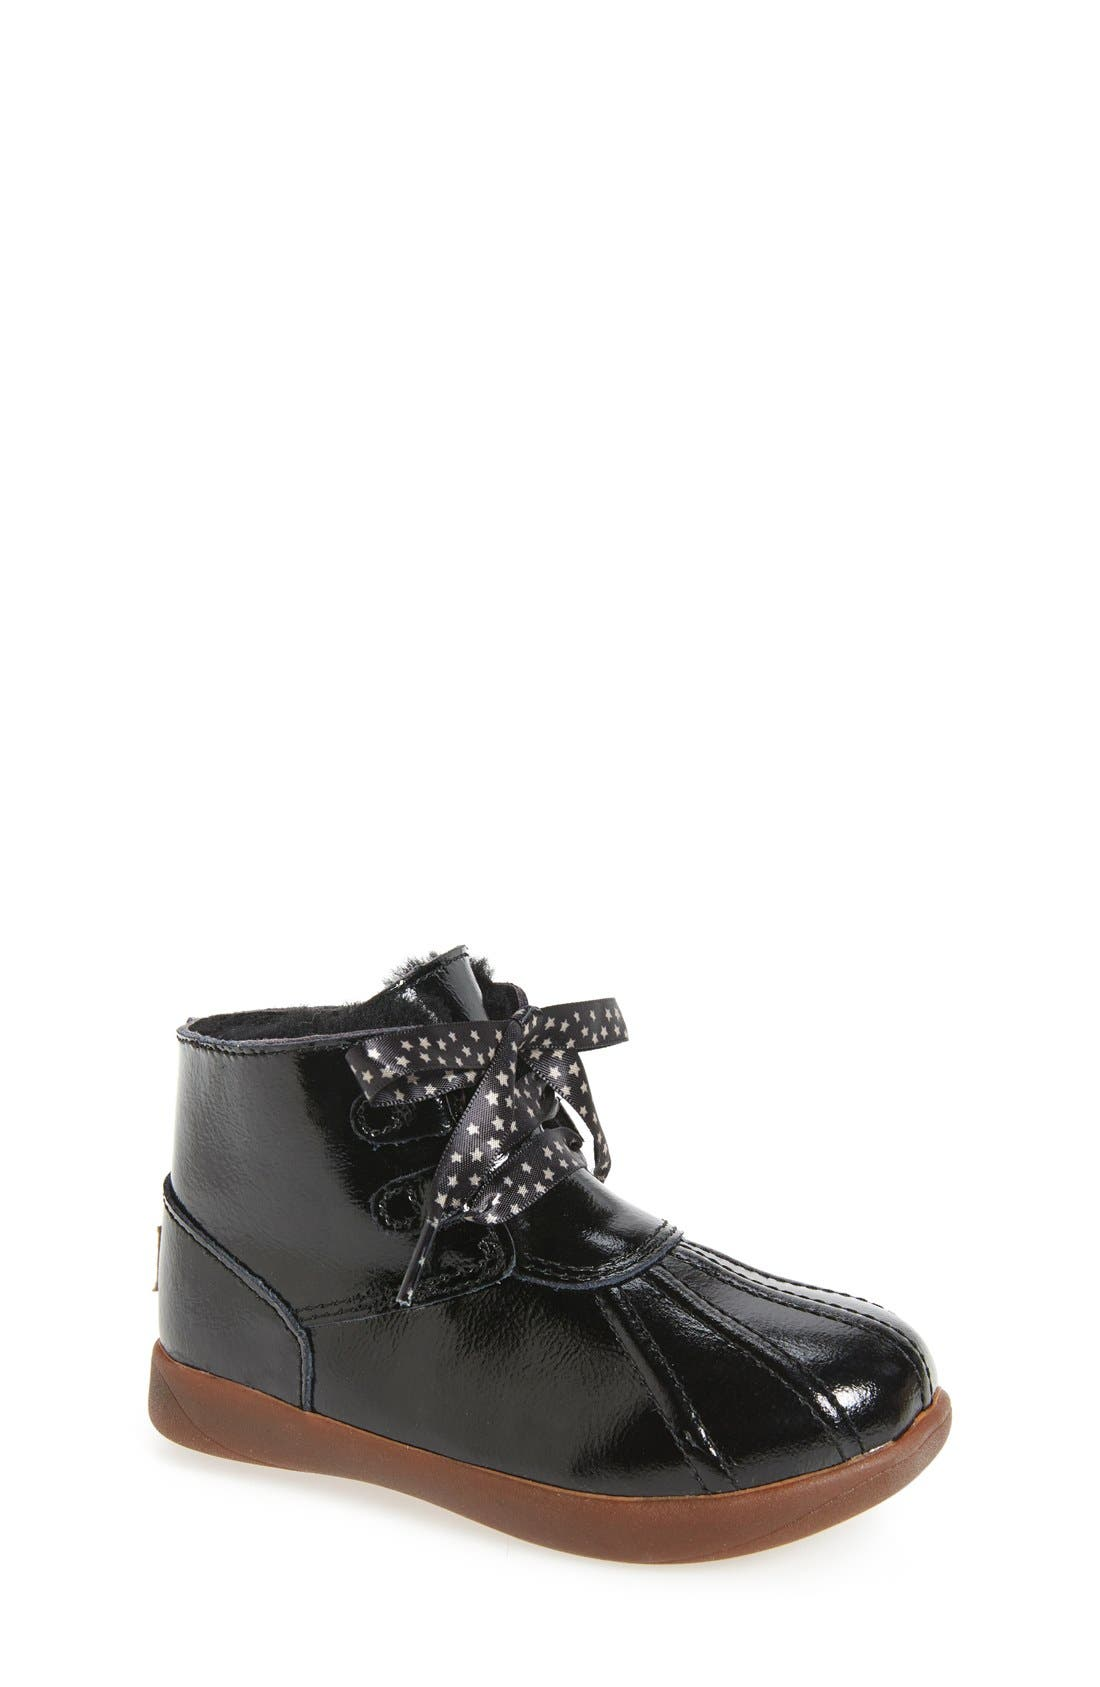 Payten Boot,                         Main,                         color, 001